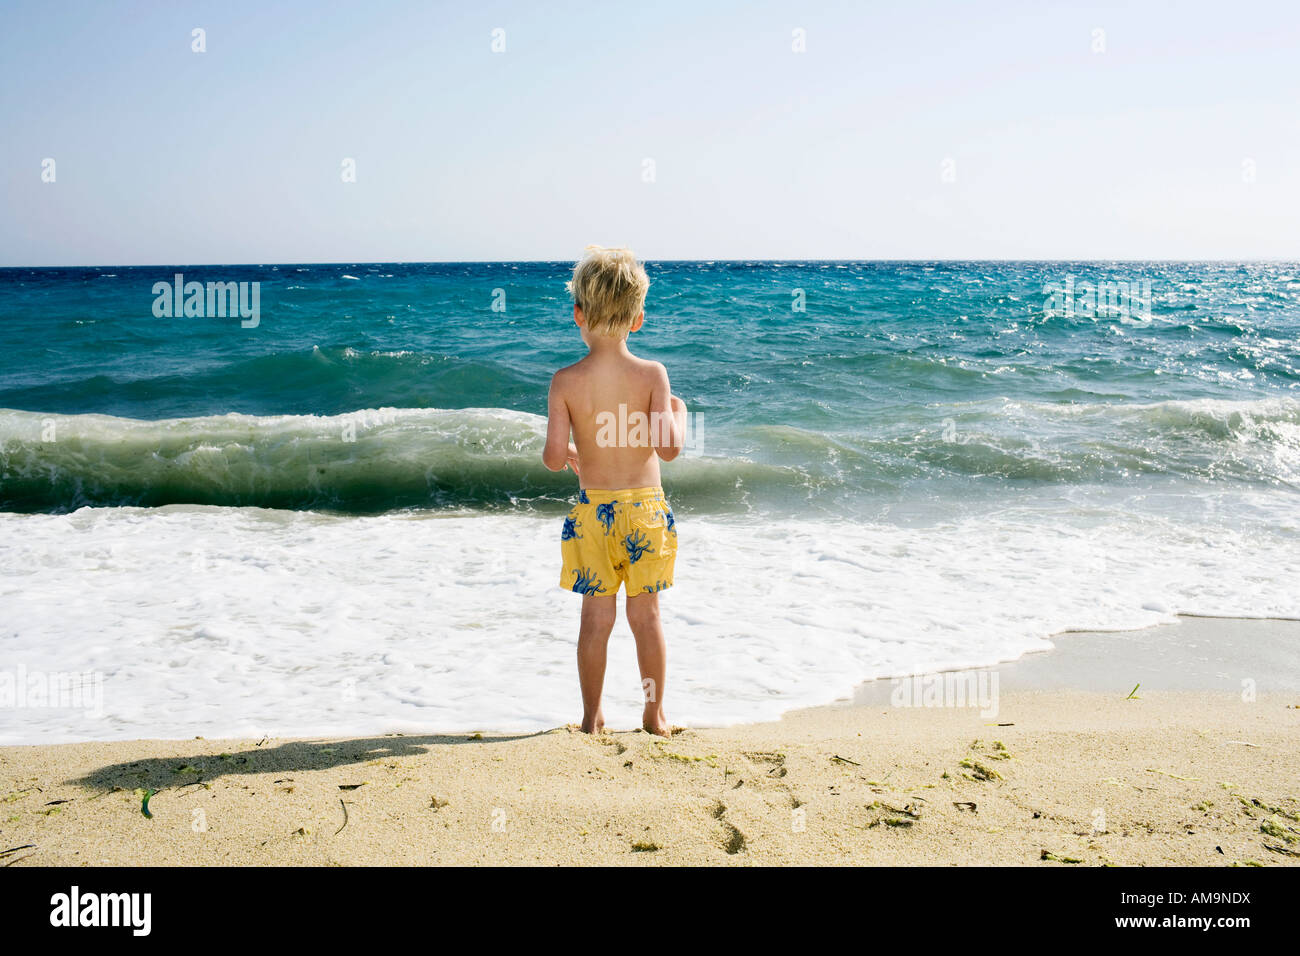 Young boy standing on the beach. Stock Photo